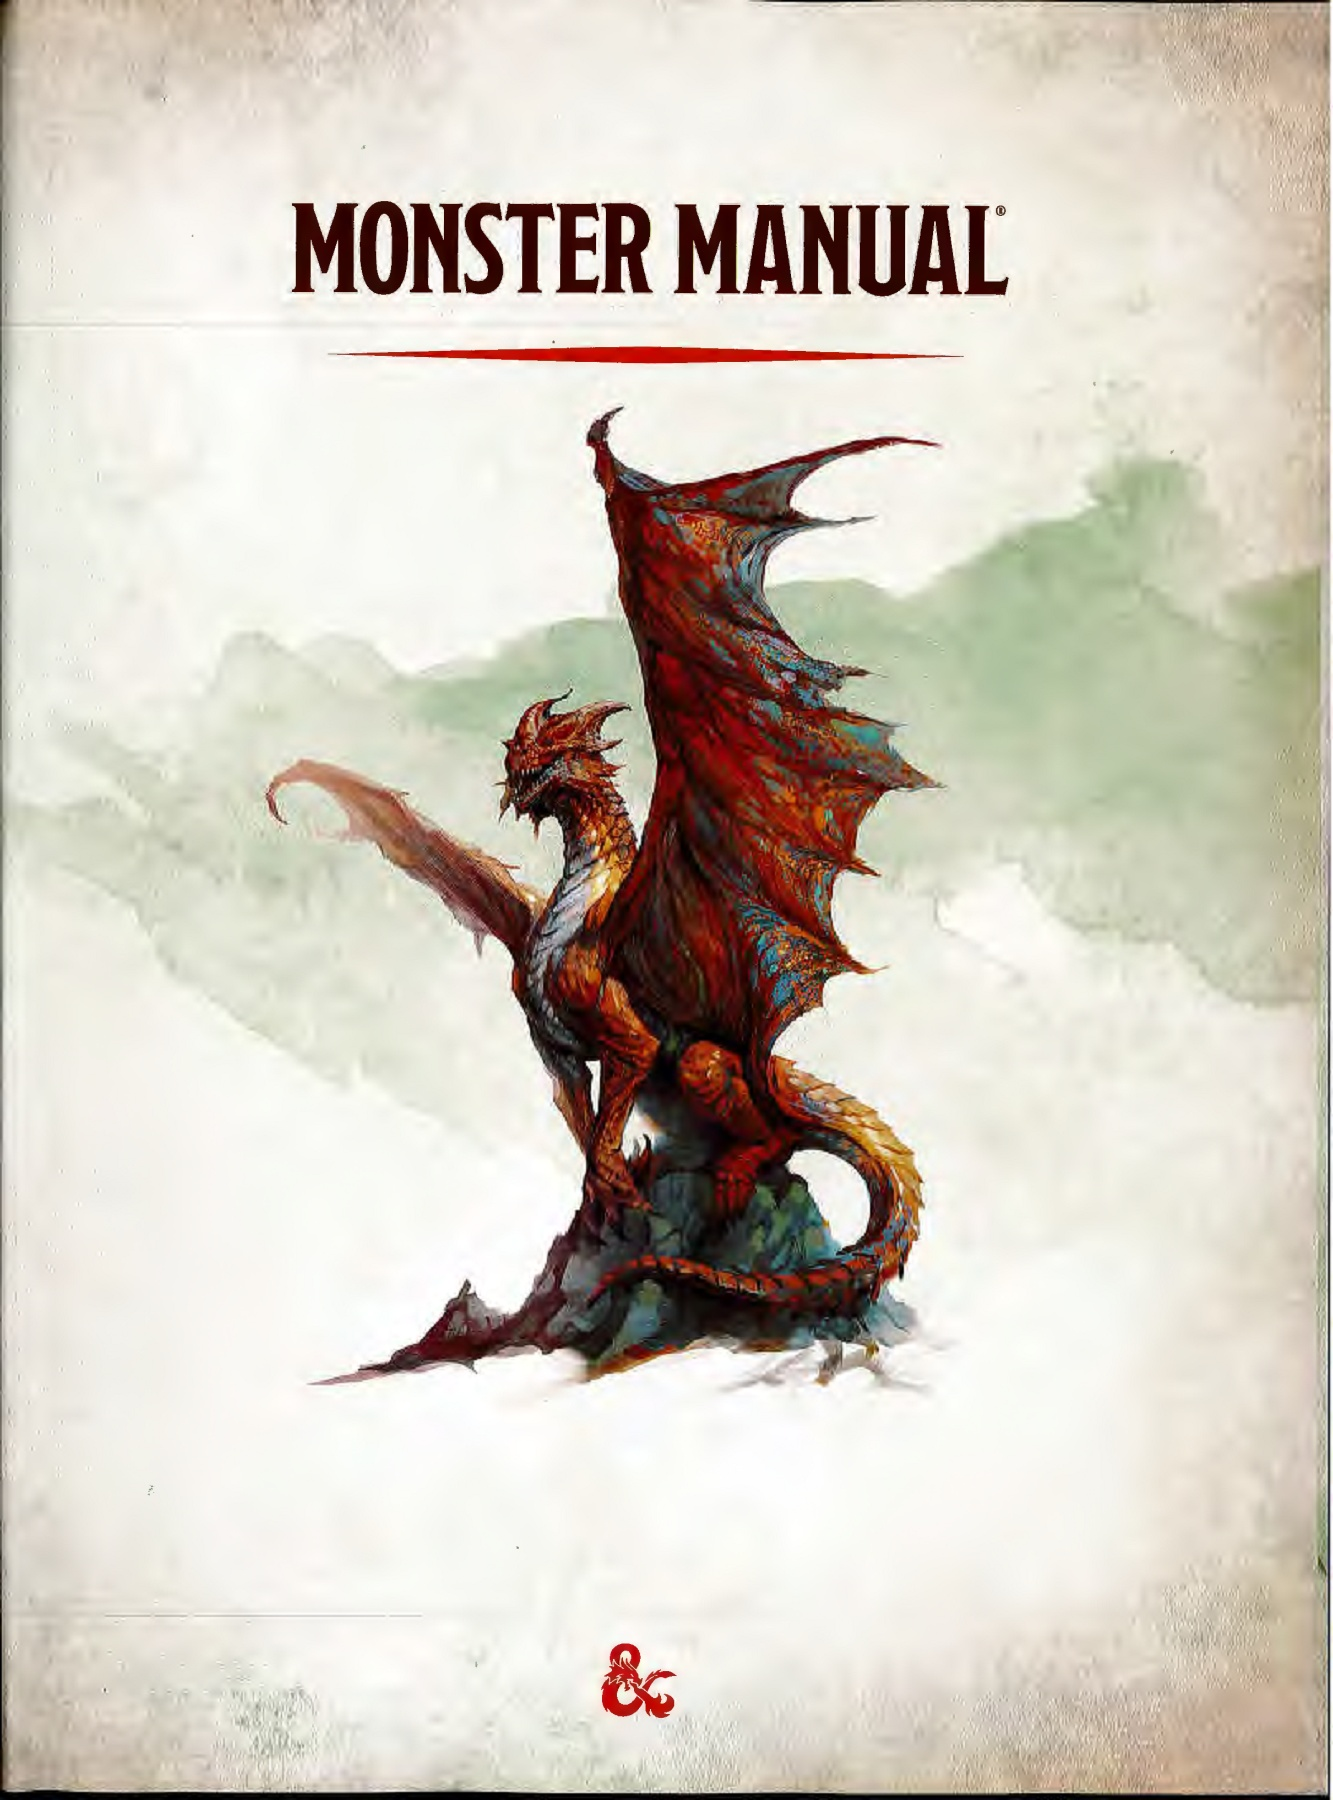 Monster Manual D&D 5e Pages 1 - 50 - Text Version | AnyFlip